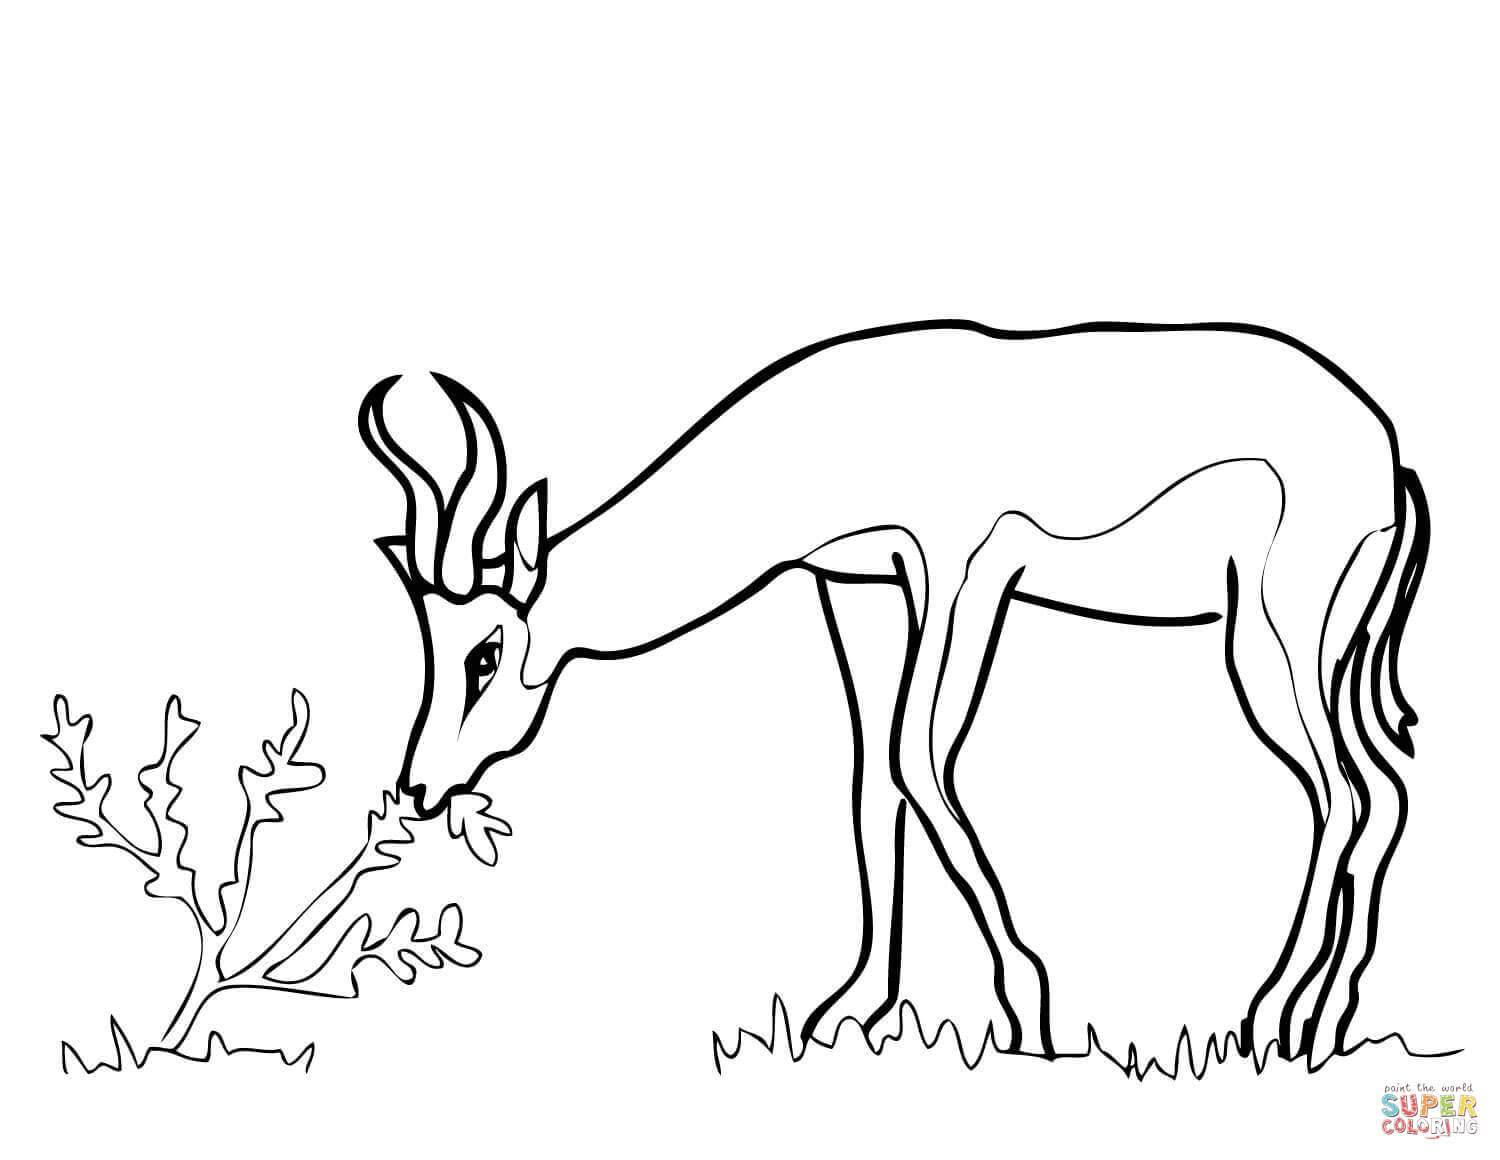 Springbok From South Africa Coloring Online